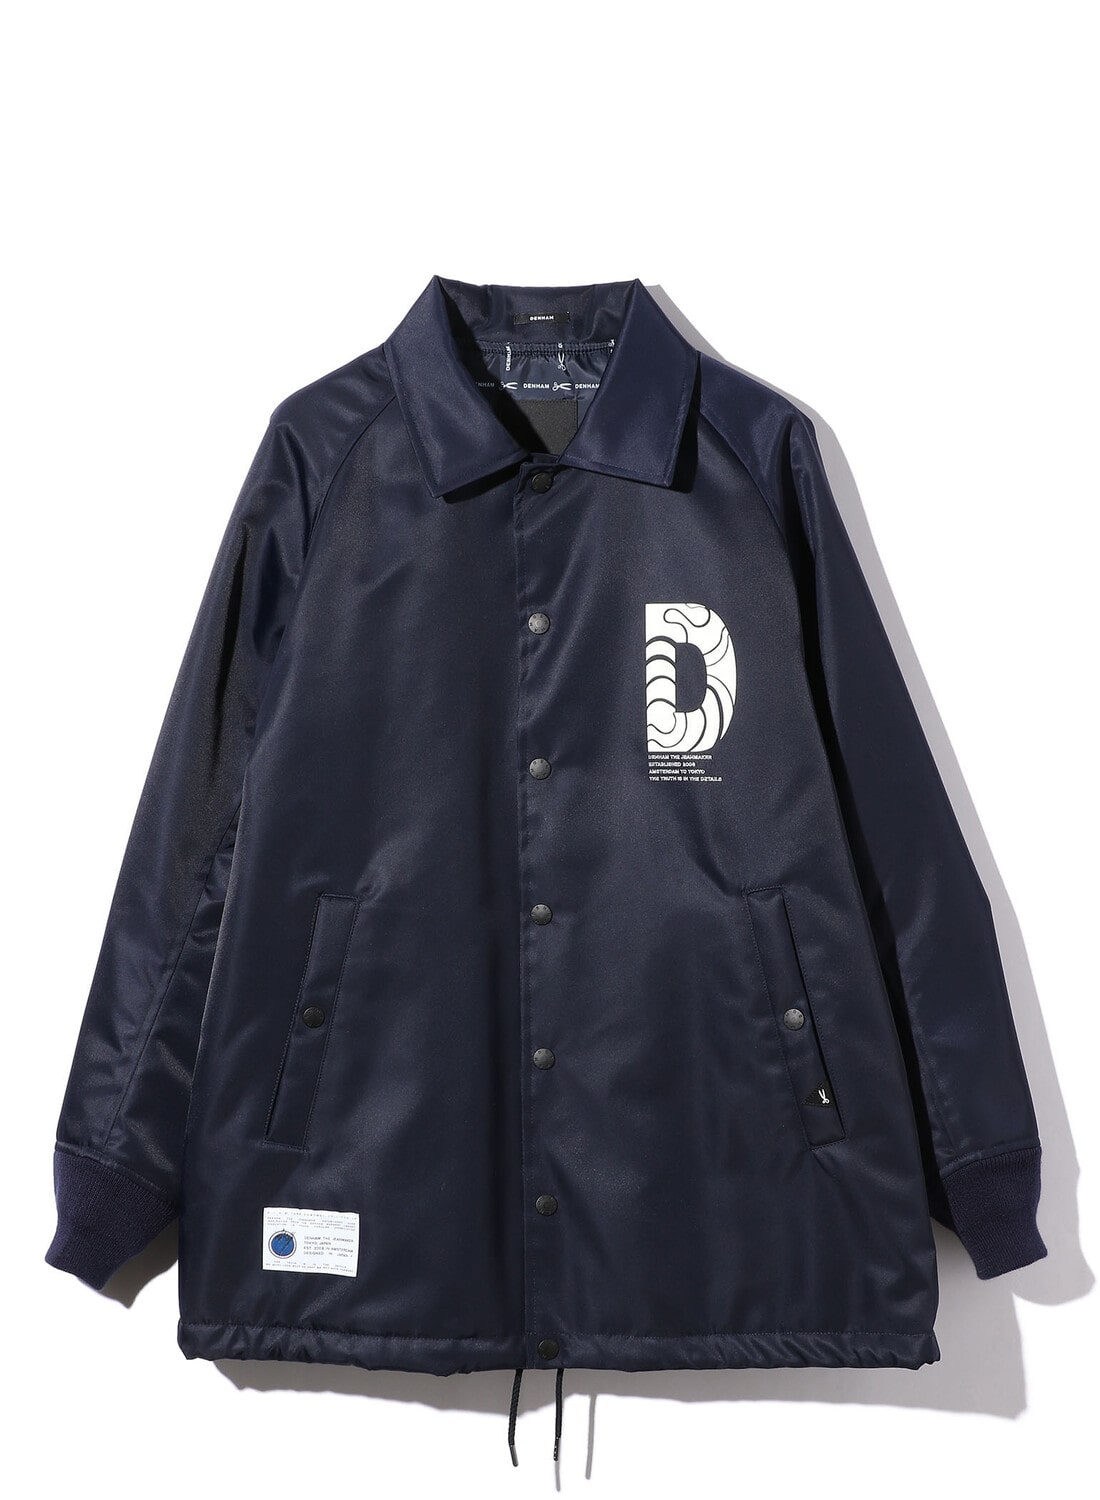 【日本限定】STITCH COACH JACKET